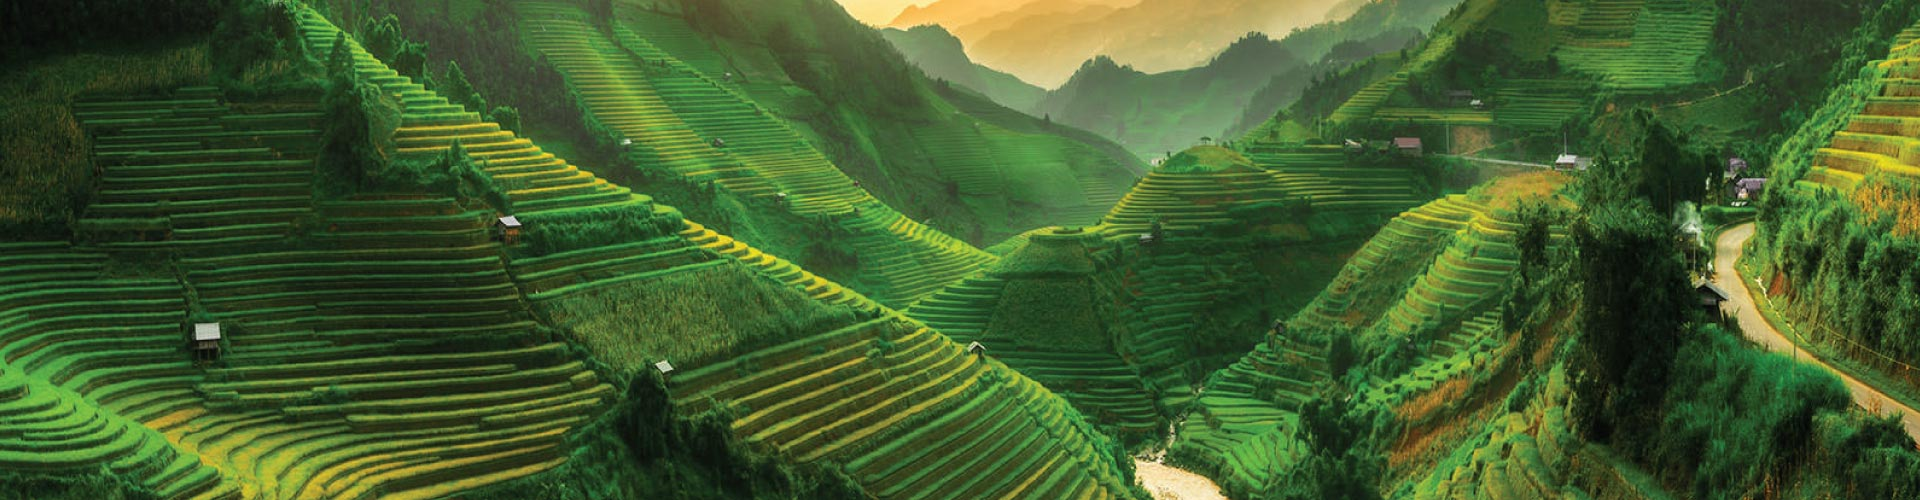 Hanoi & Ha Long Bay Day Cruise + Sa Pa Valley